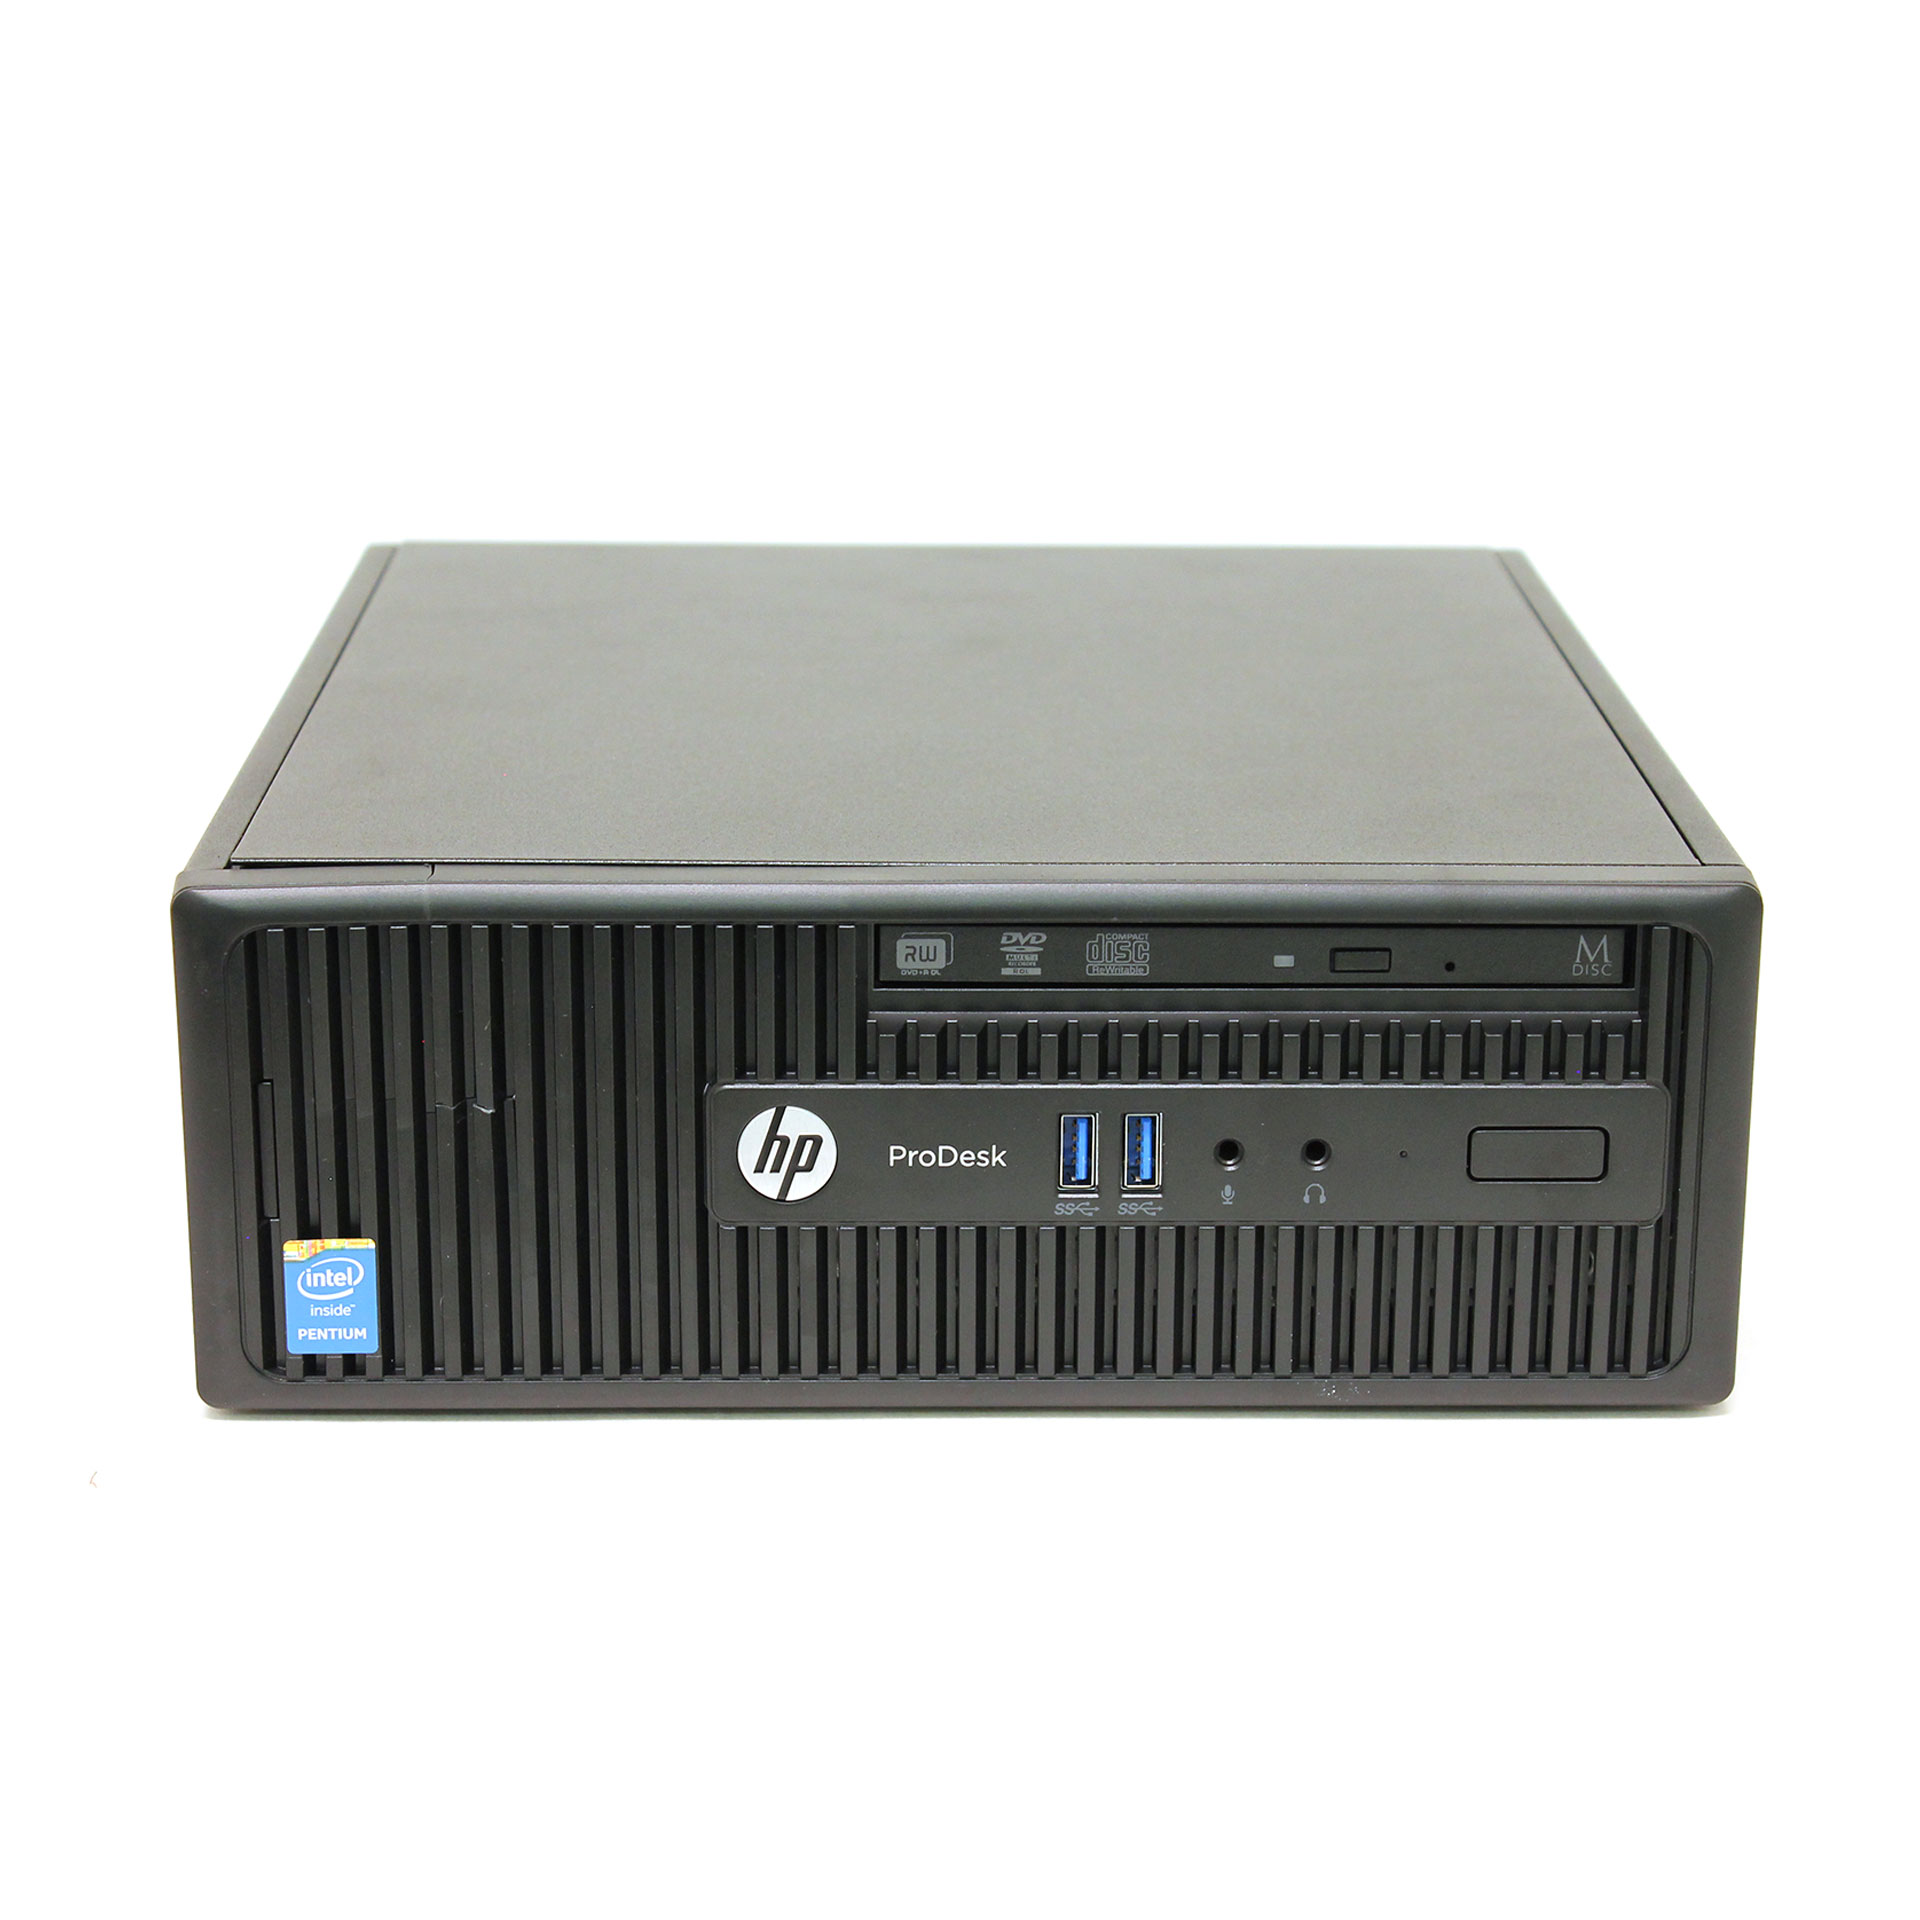 HP ProDesk 400 G2.5 L9F02UT#ABA Desktop PC G3260 4GB 500GB